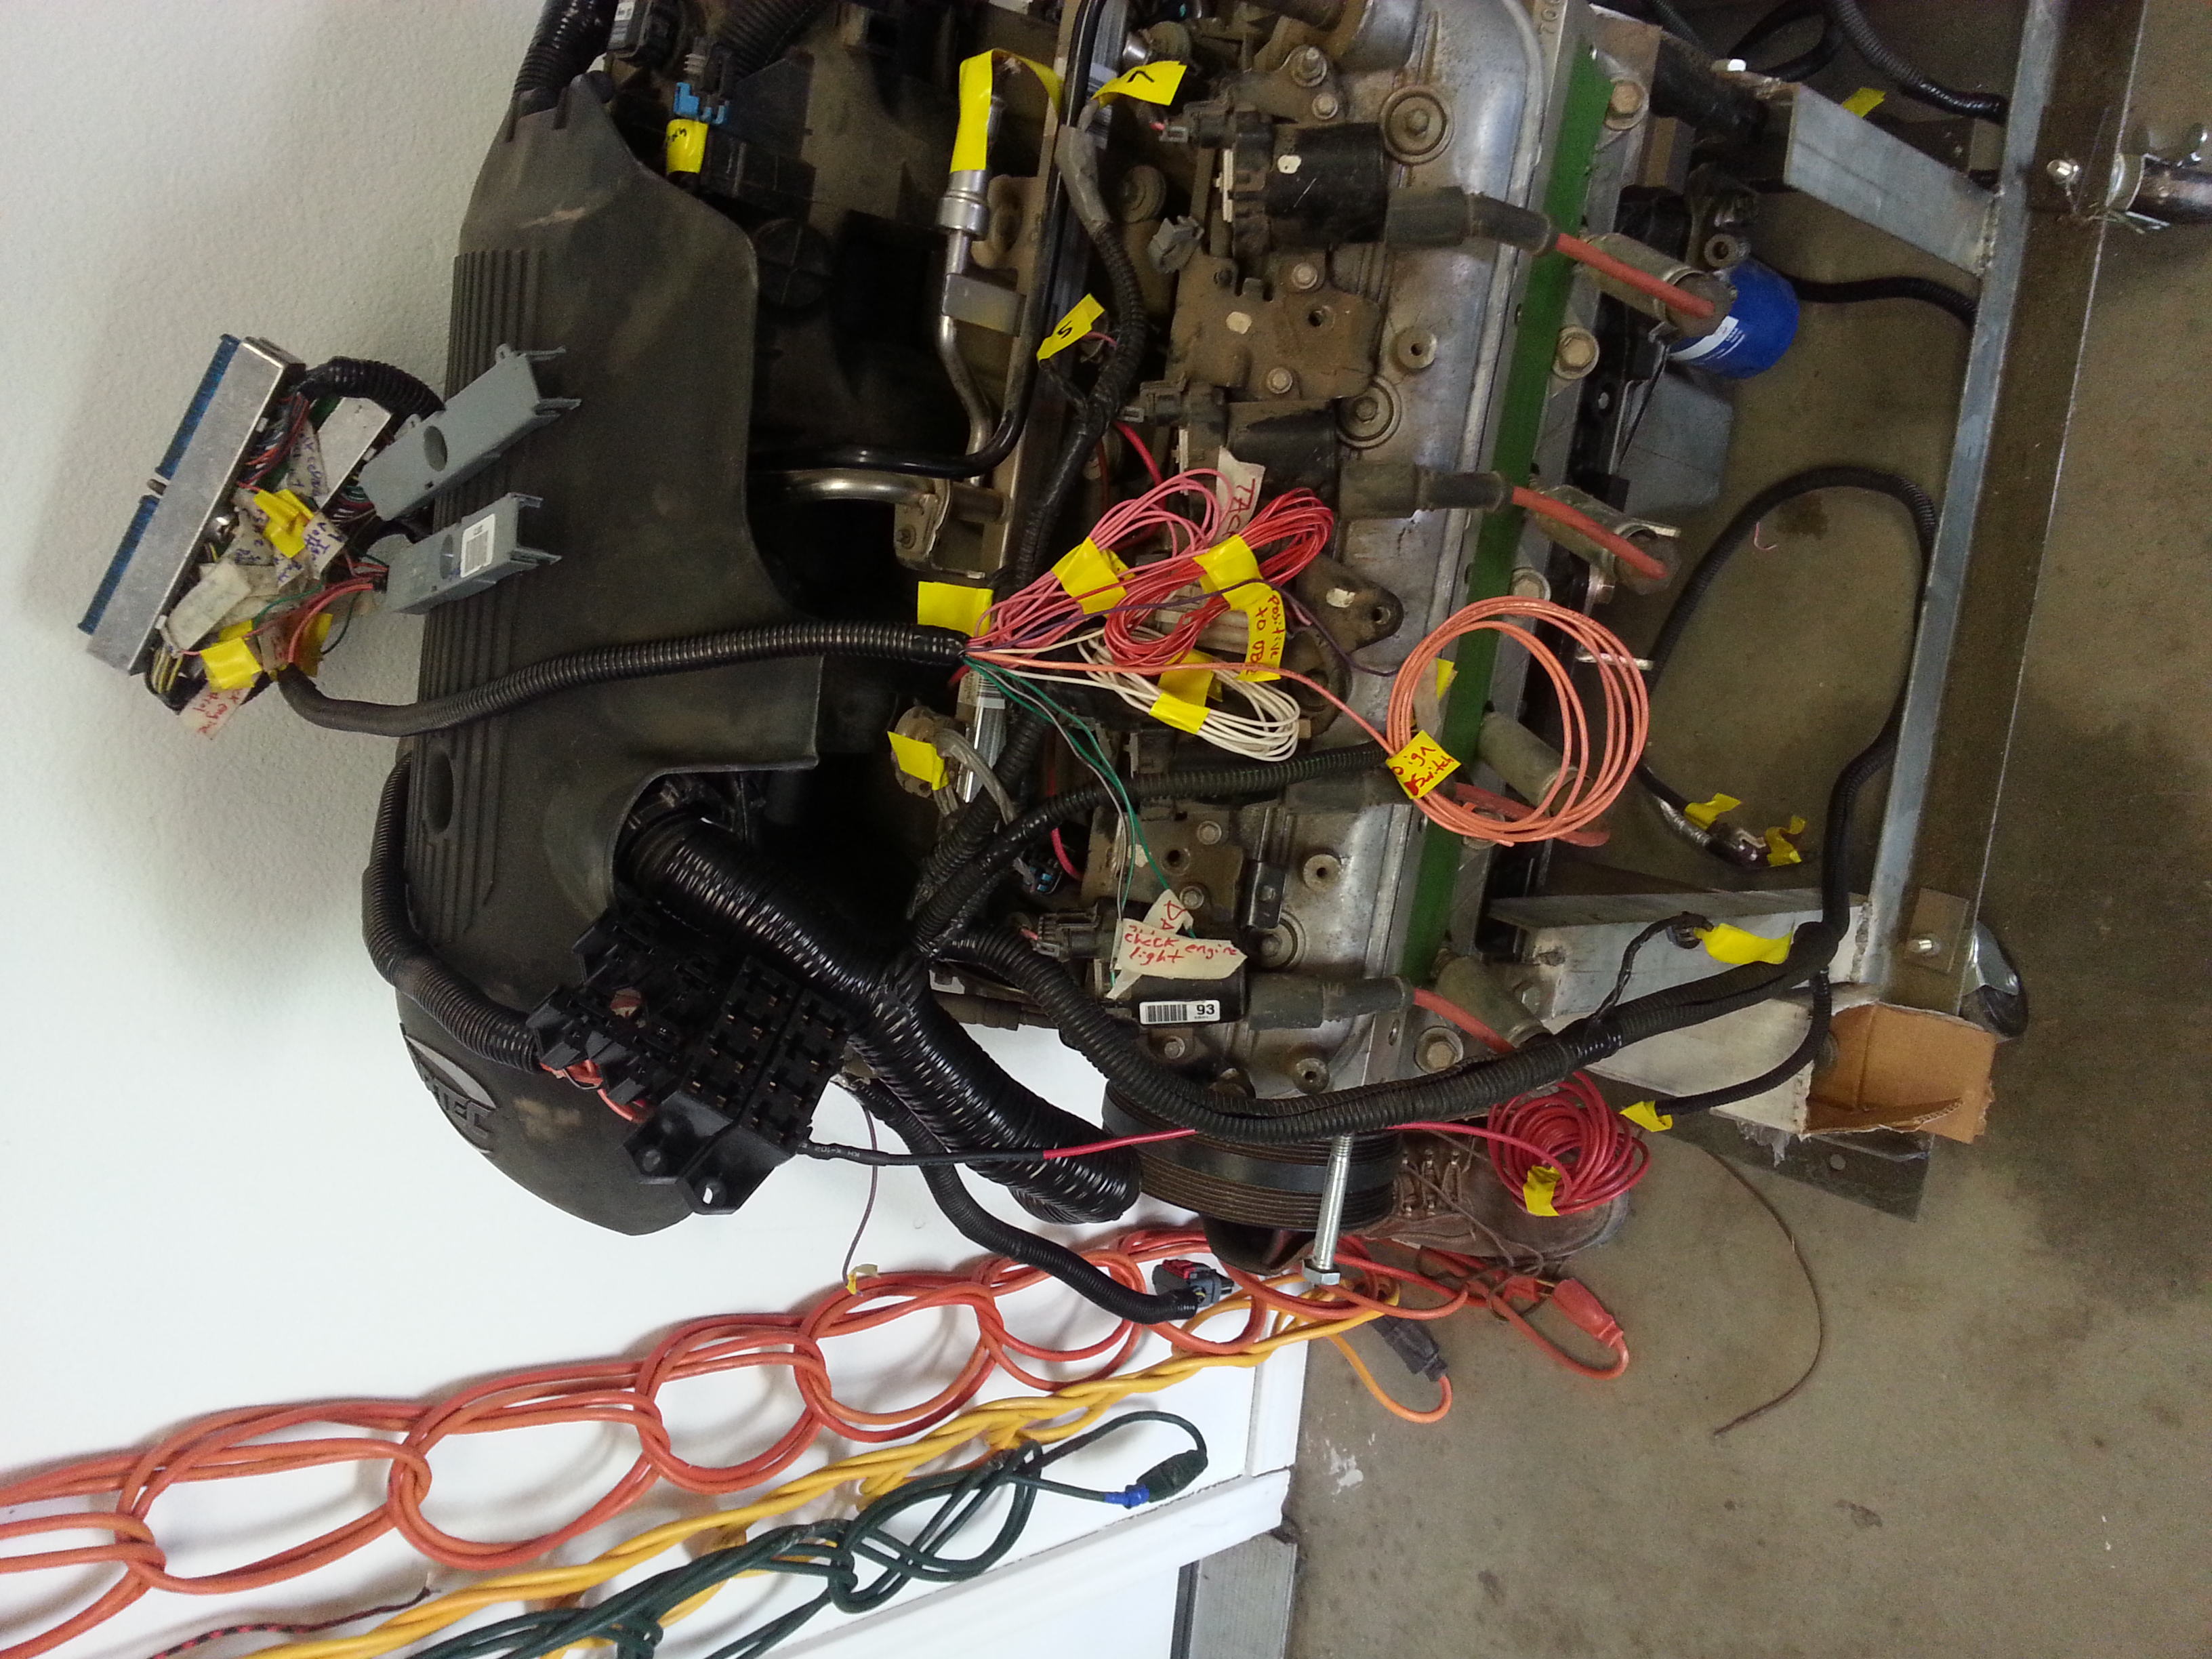 Finished LSX Wiring Harness with diy fuse/relay block - 19106115